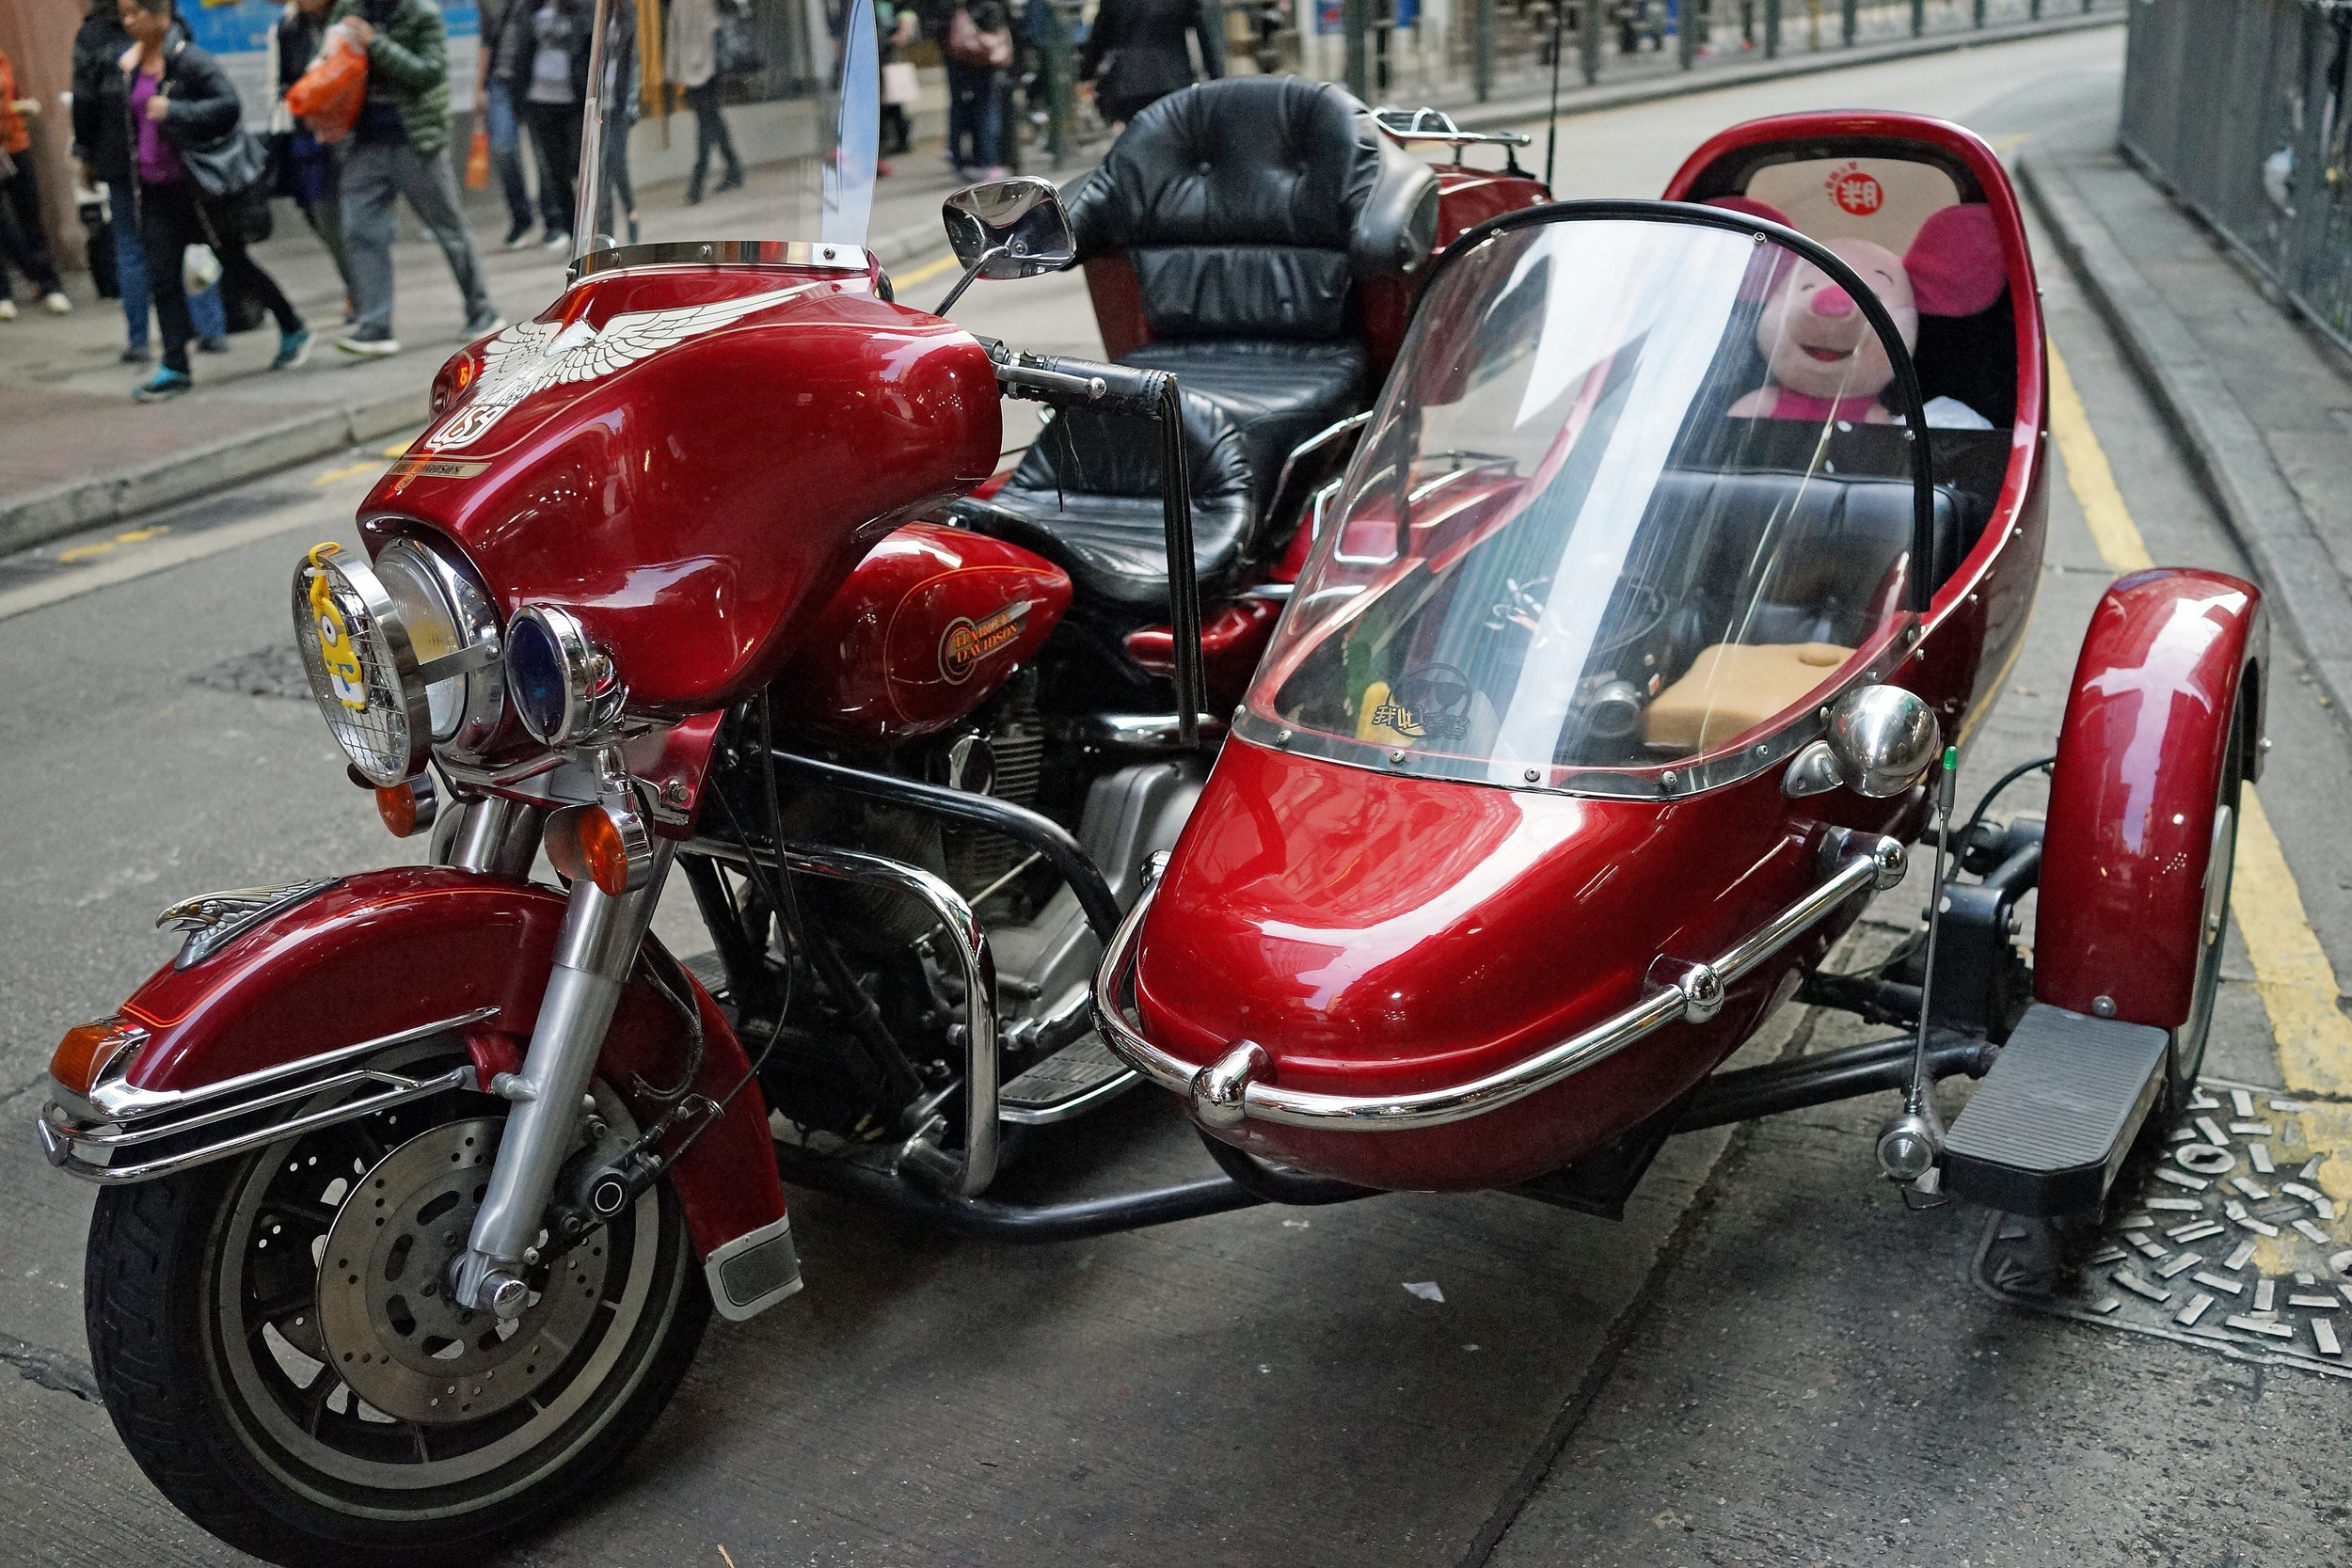 Not a motorbike you see everyday in Hong Kong - Harley Davidson!